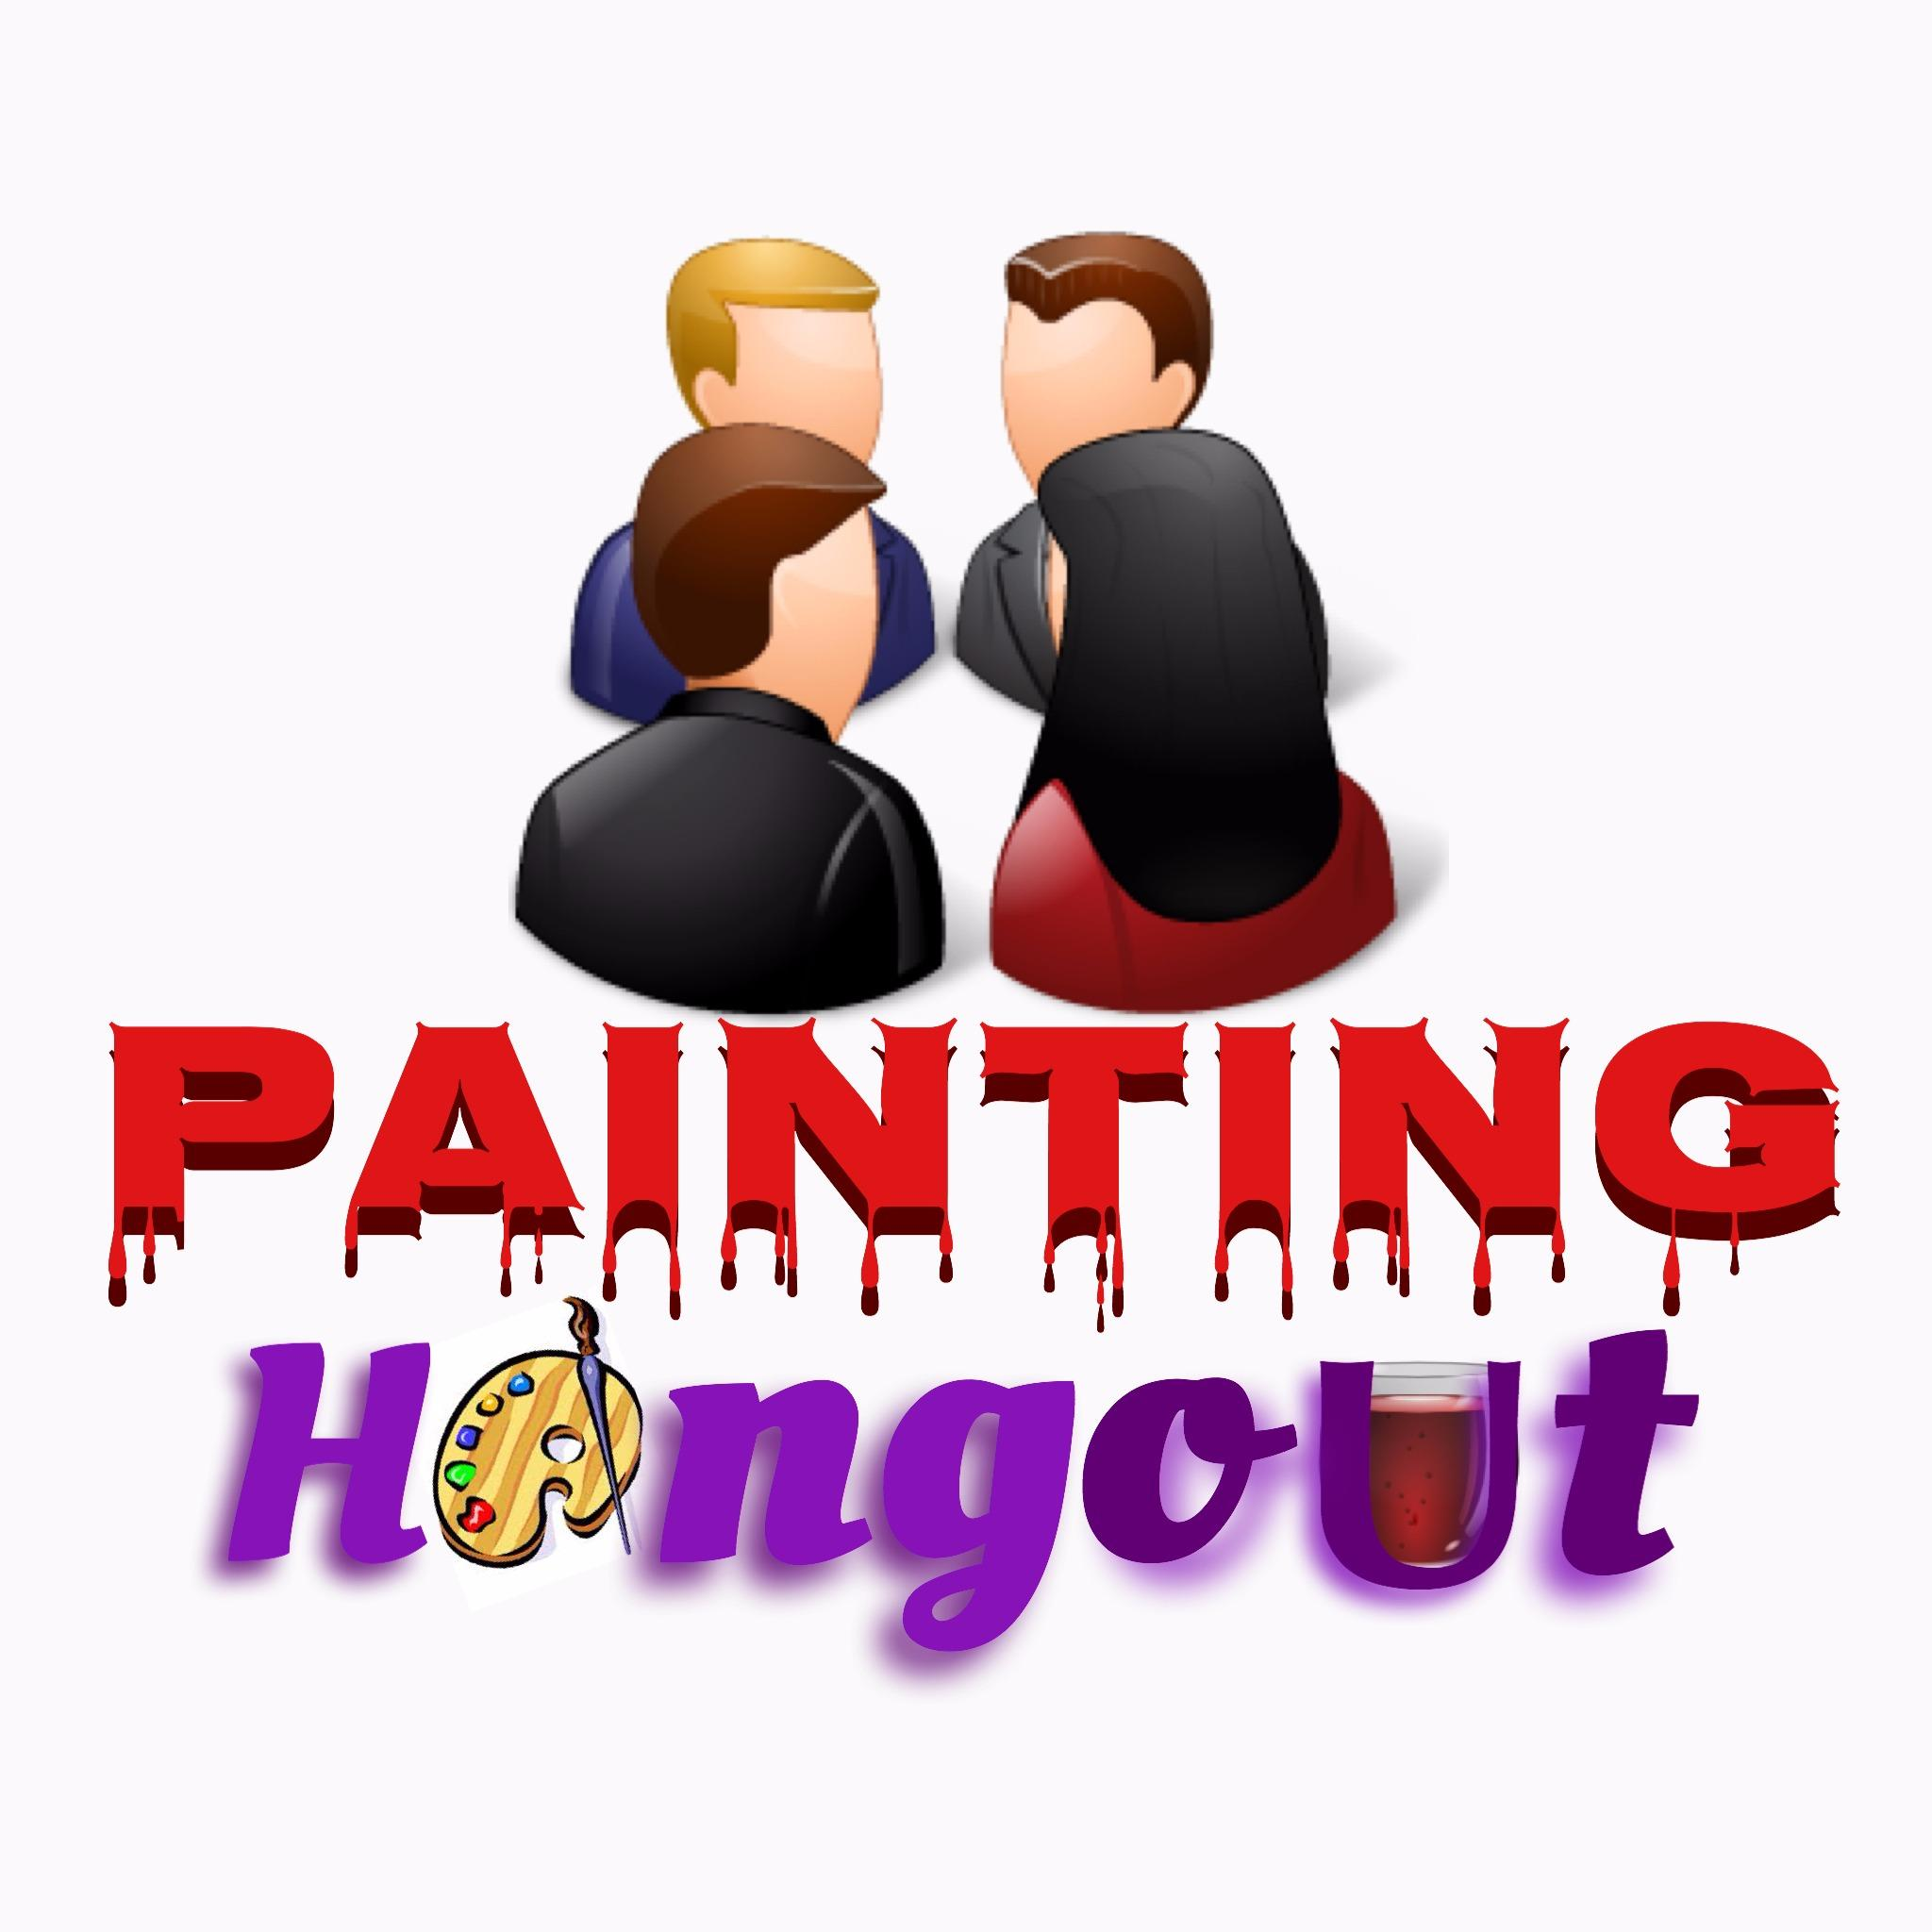 Painting Hangout - New York, NY 10022 - (646)590-6504 | ShowMeLocal.com